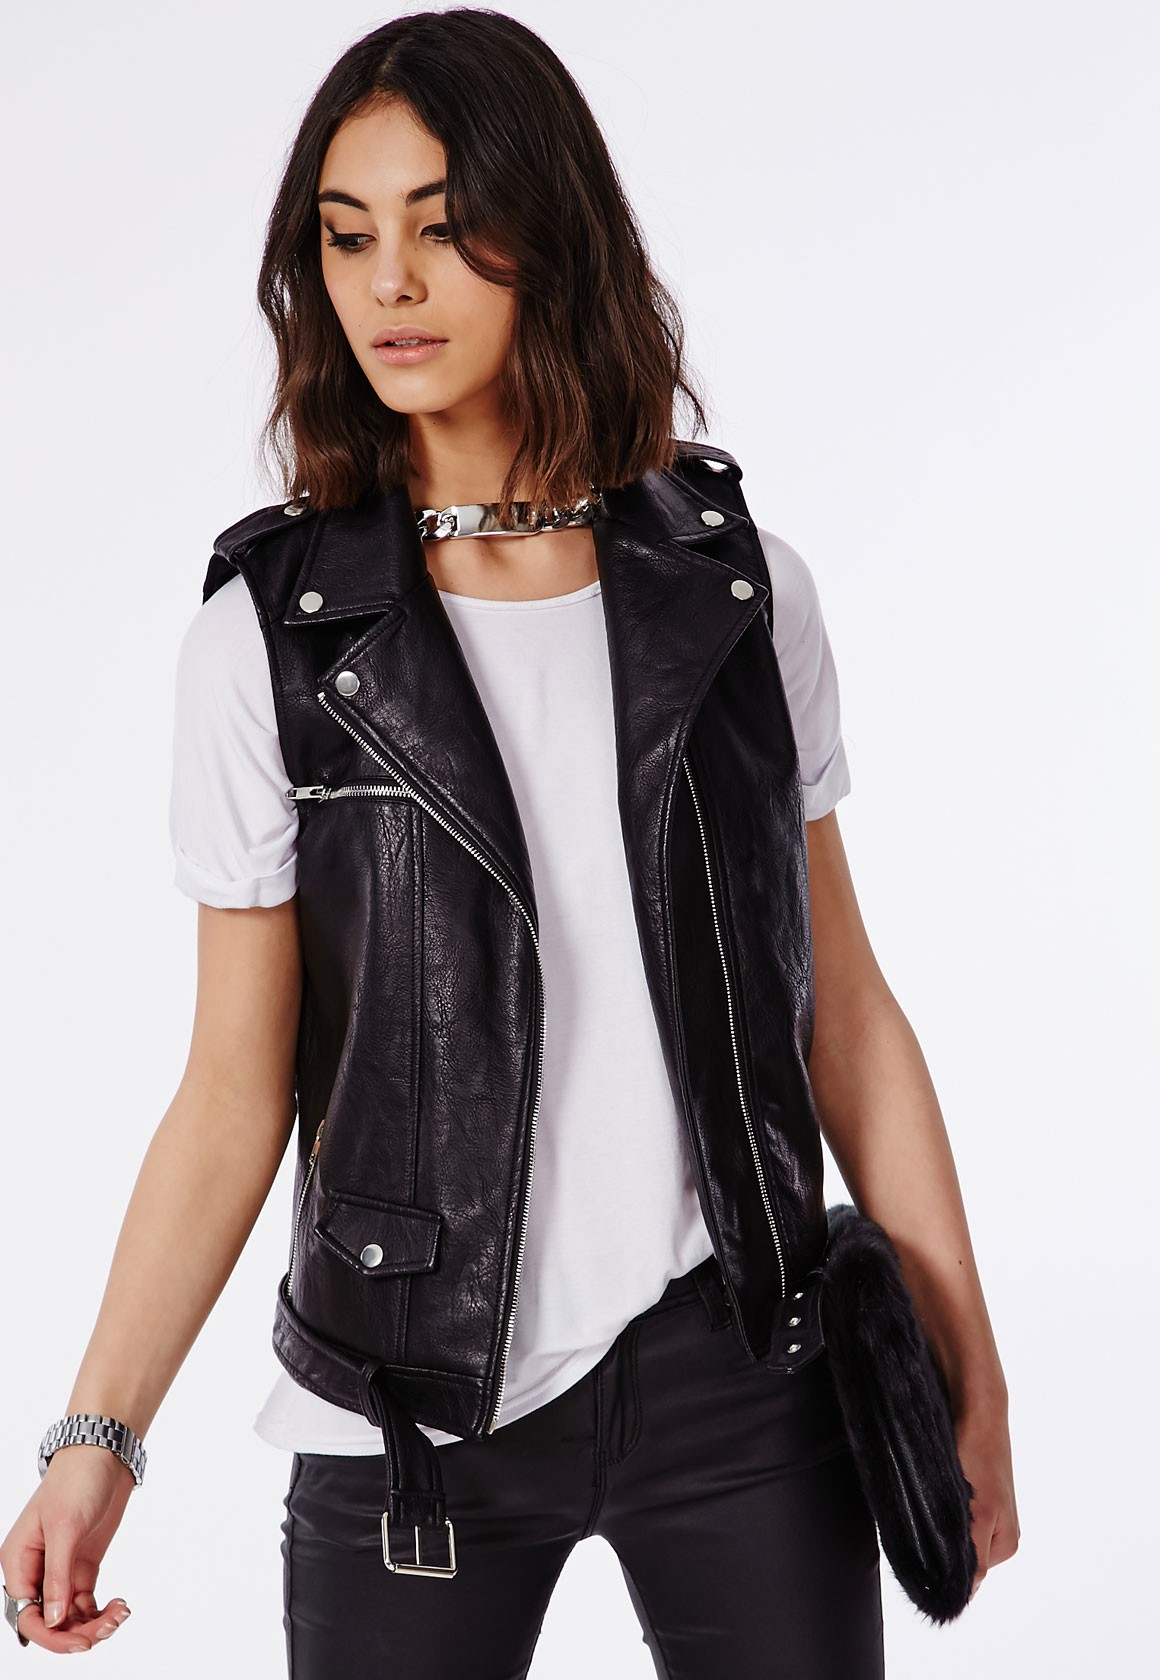 Sleeveless leather motorcycle jacket vest. This one of a kind buffalo leather vest is loaded with lots of premium features. Jamin' Leather Exclusive.5/5(10).